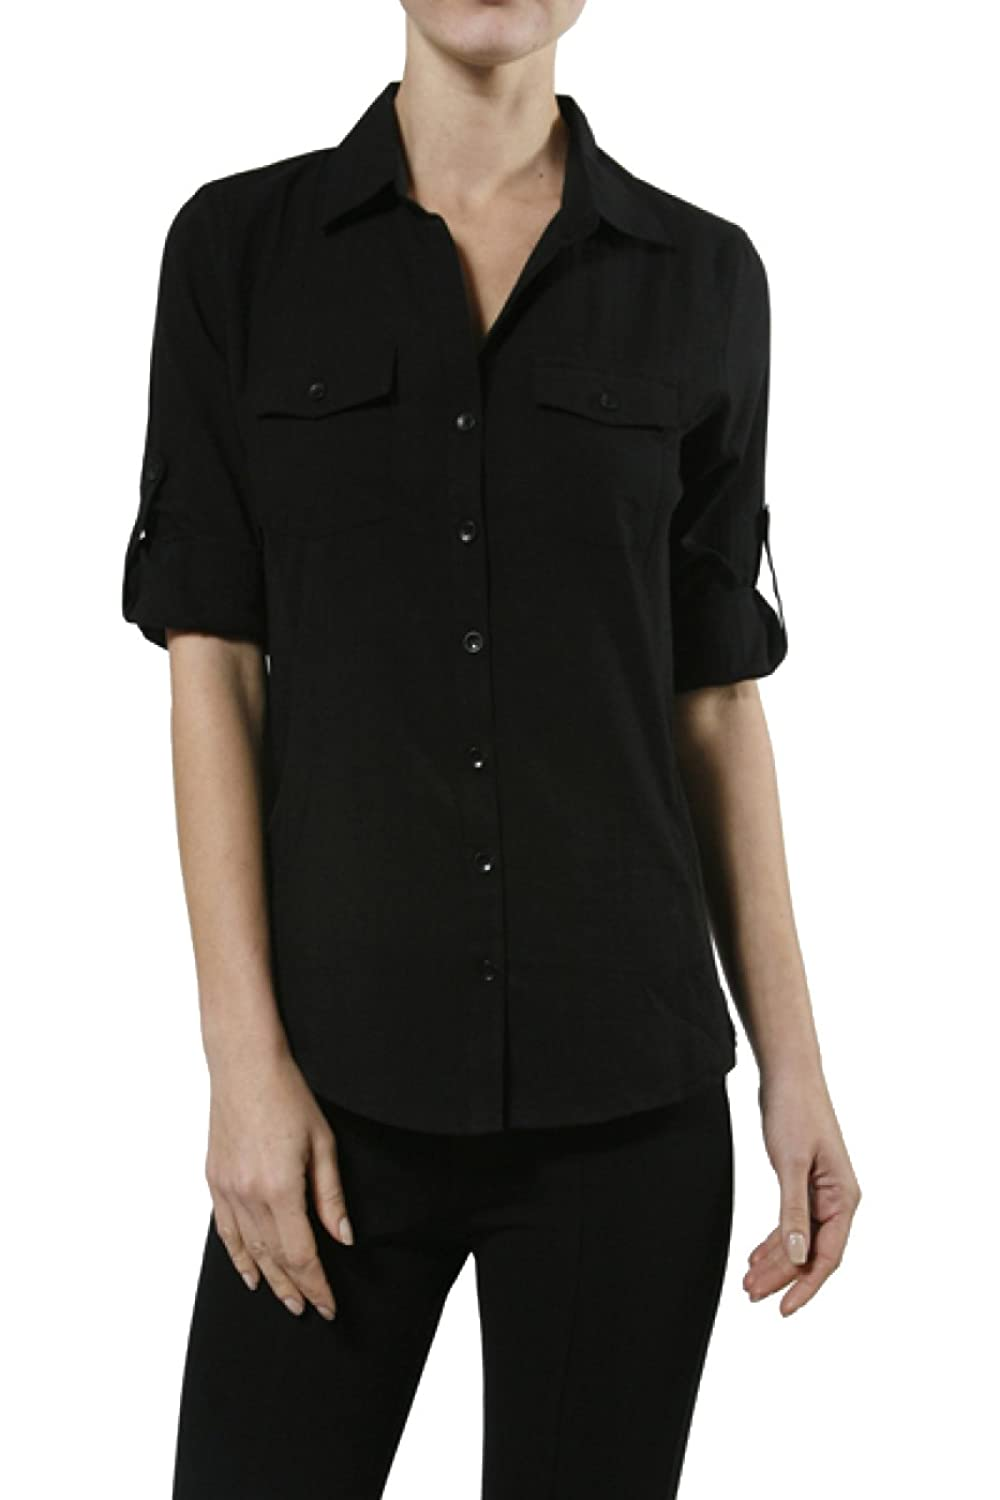 2LUV Women's 3/4 Sleeve Cotton Button Down Blouse